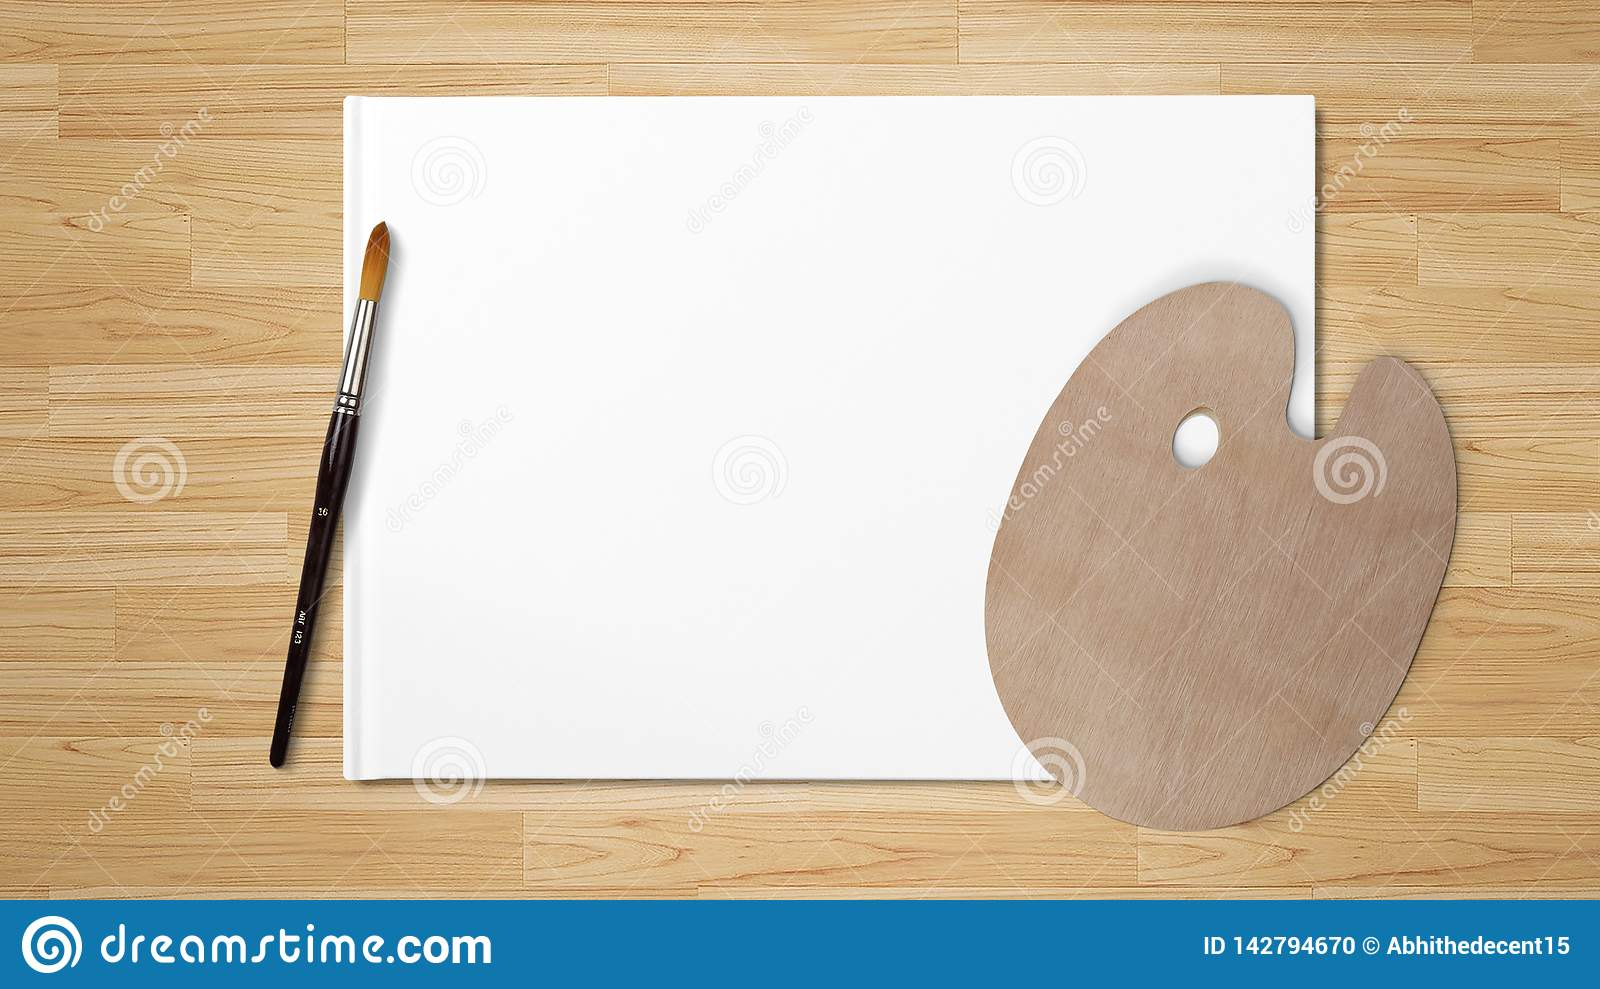 New wooden palette with art brush, isolated on white background and wooden background